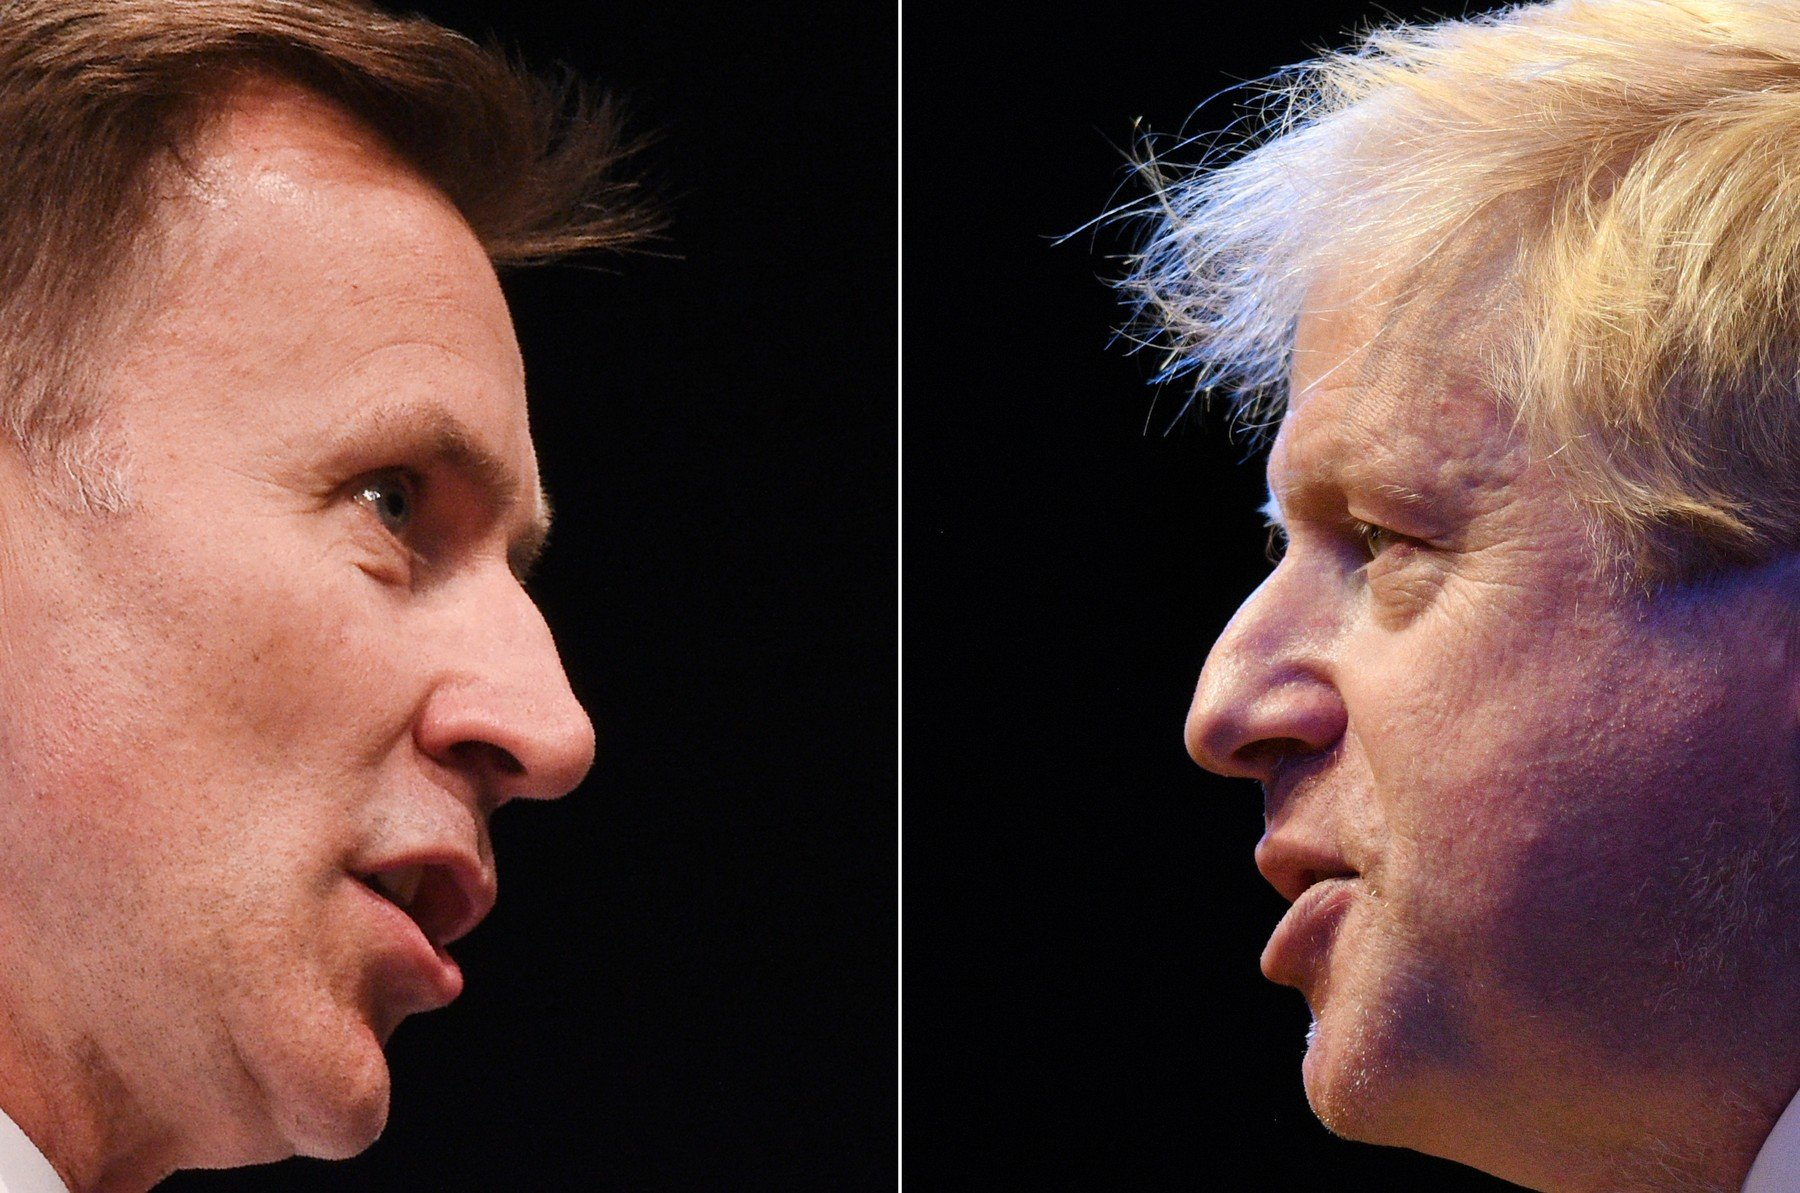 Jeremy Hunt nebo Boris Johnson?